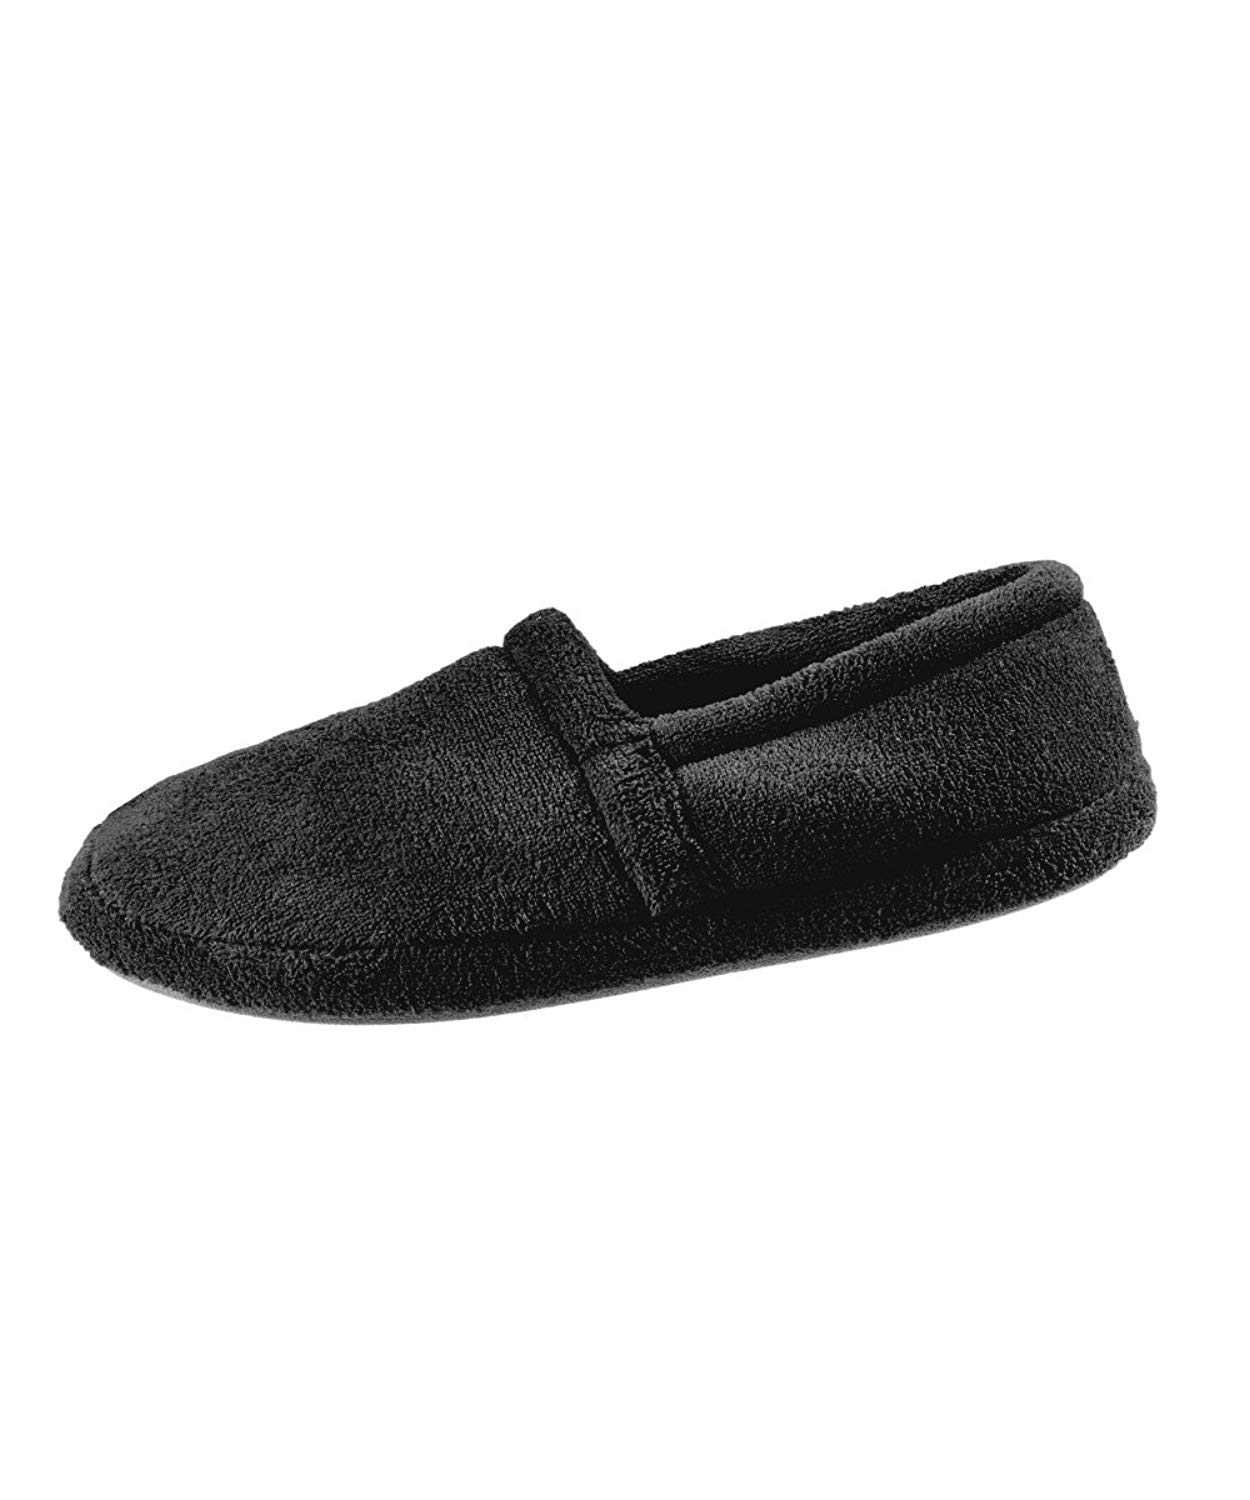 Most Comfortable Mens Slippers - Best Mens Slippers With Memory Foam Comfort Slippers - Wide Mens Bedroom Slippers – Terry Fleece Slippers - Black MED